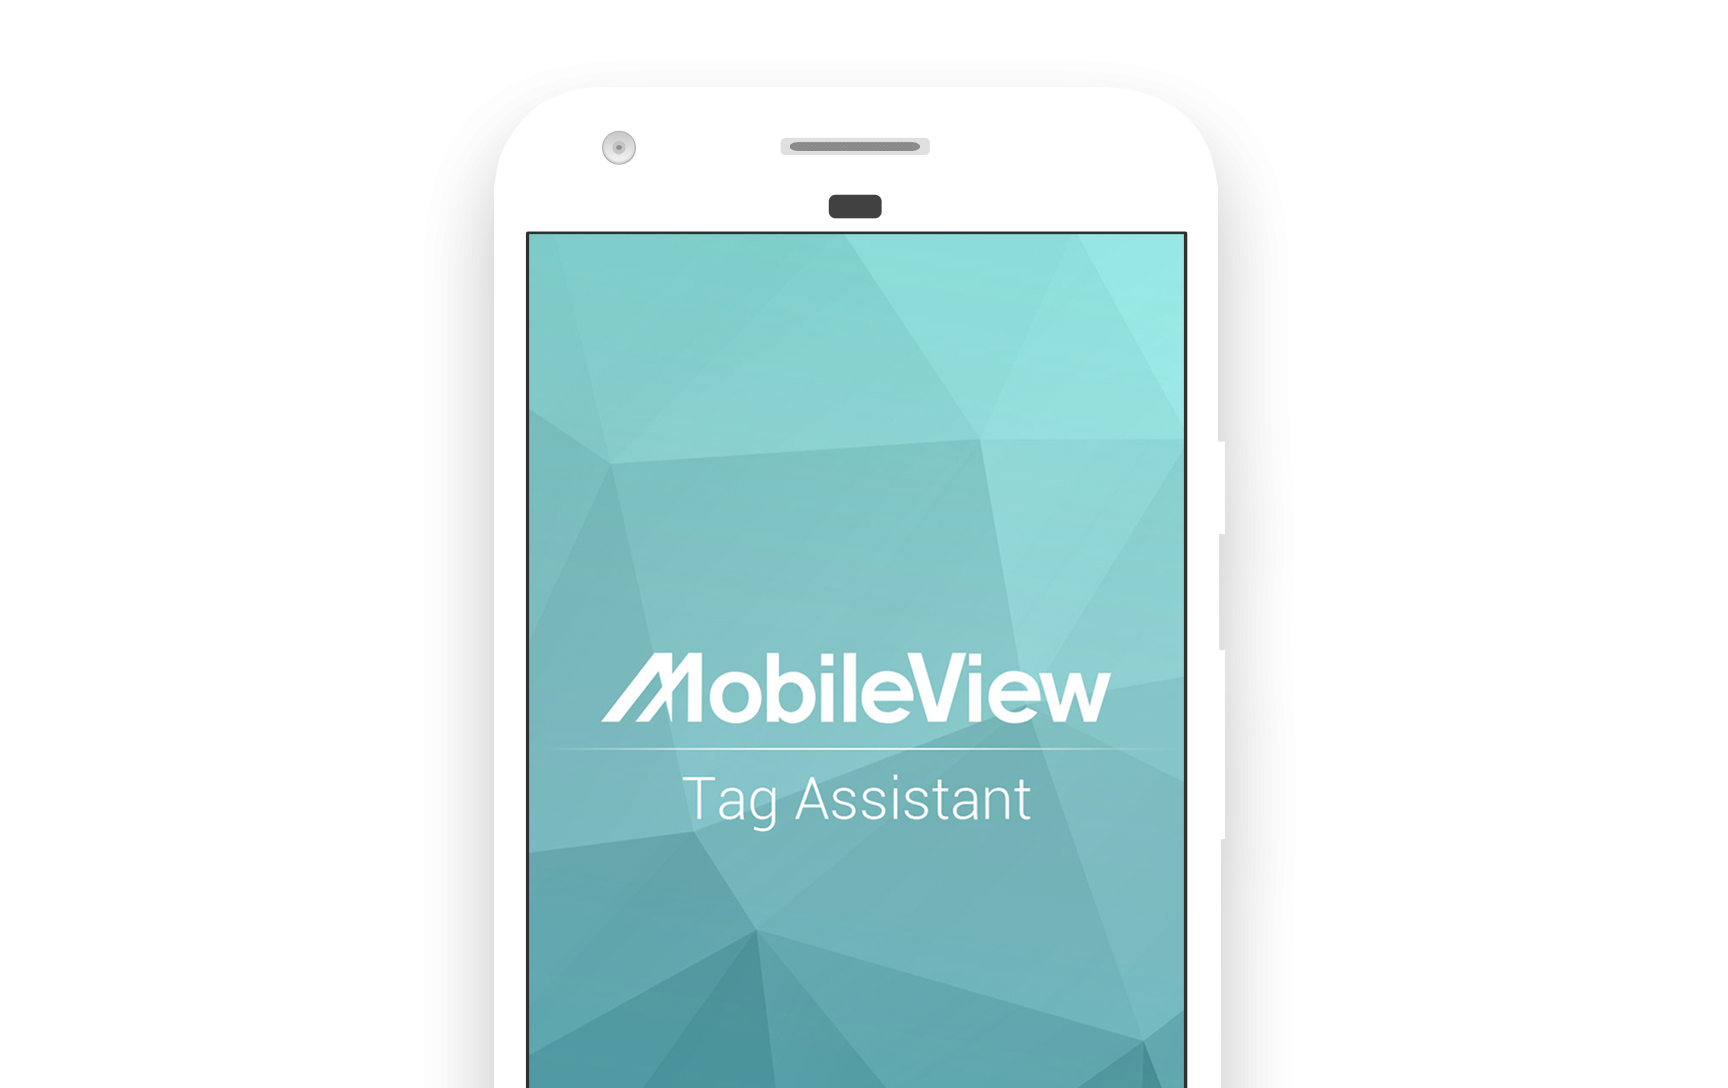 MobileView Tag Assistant